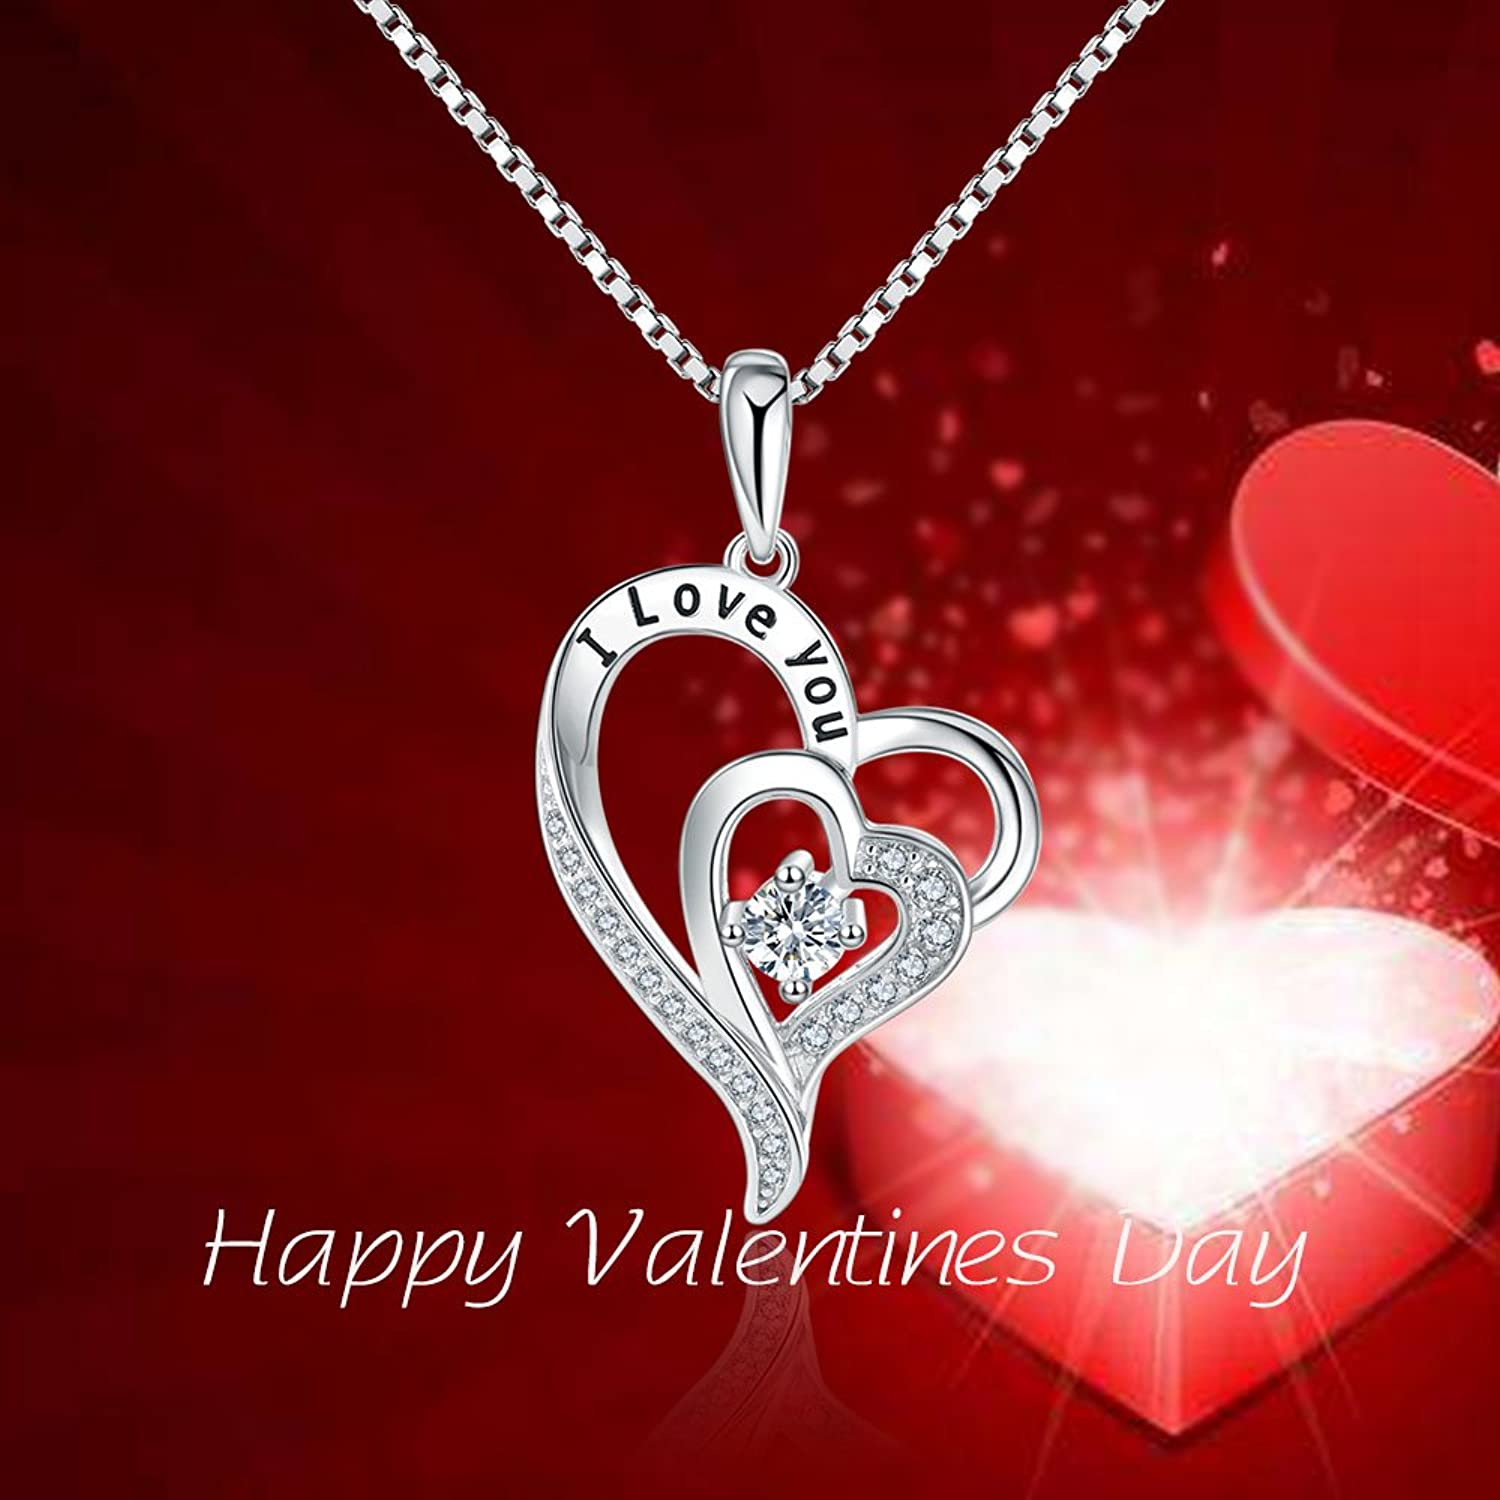 small charm love itm woman lady categories necklace jewelry valentines red day s o valentine pendant heart